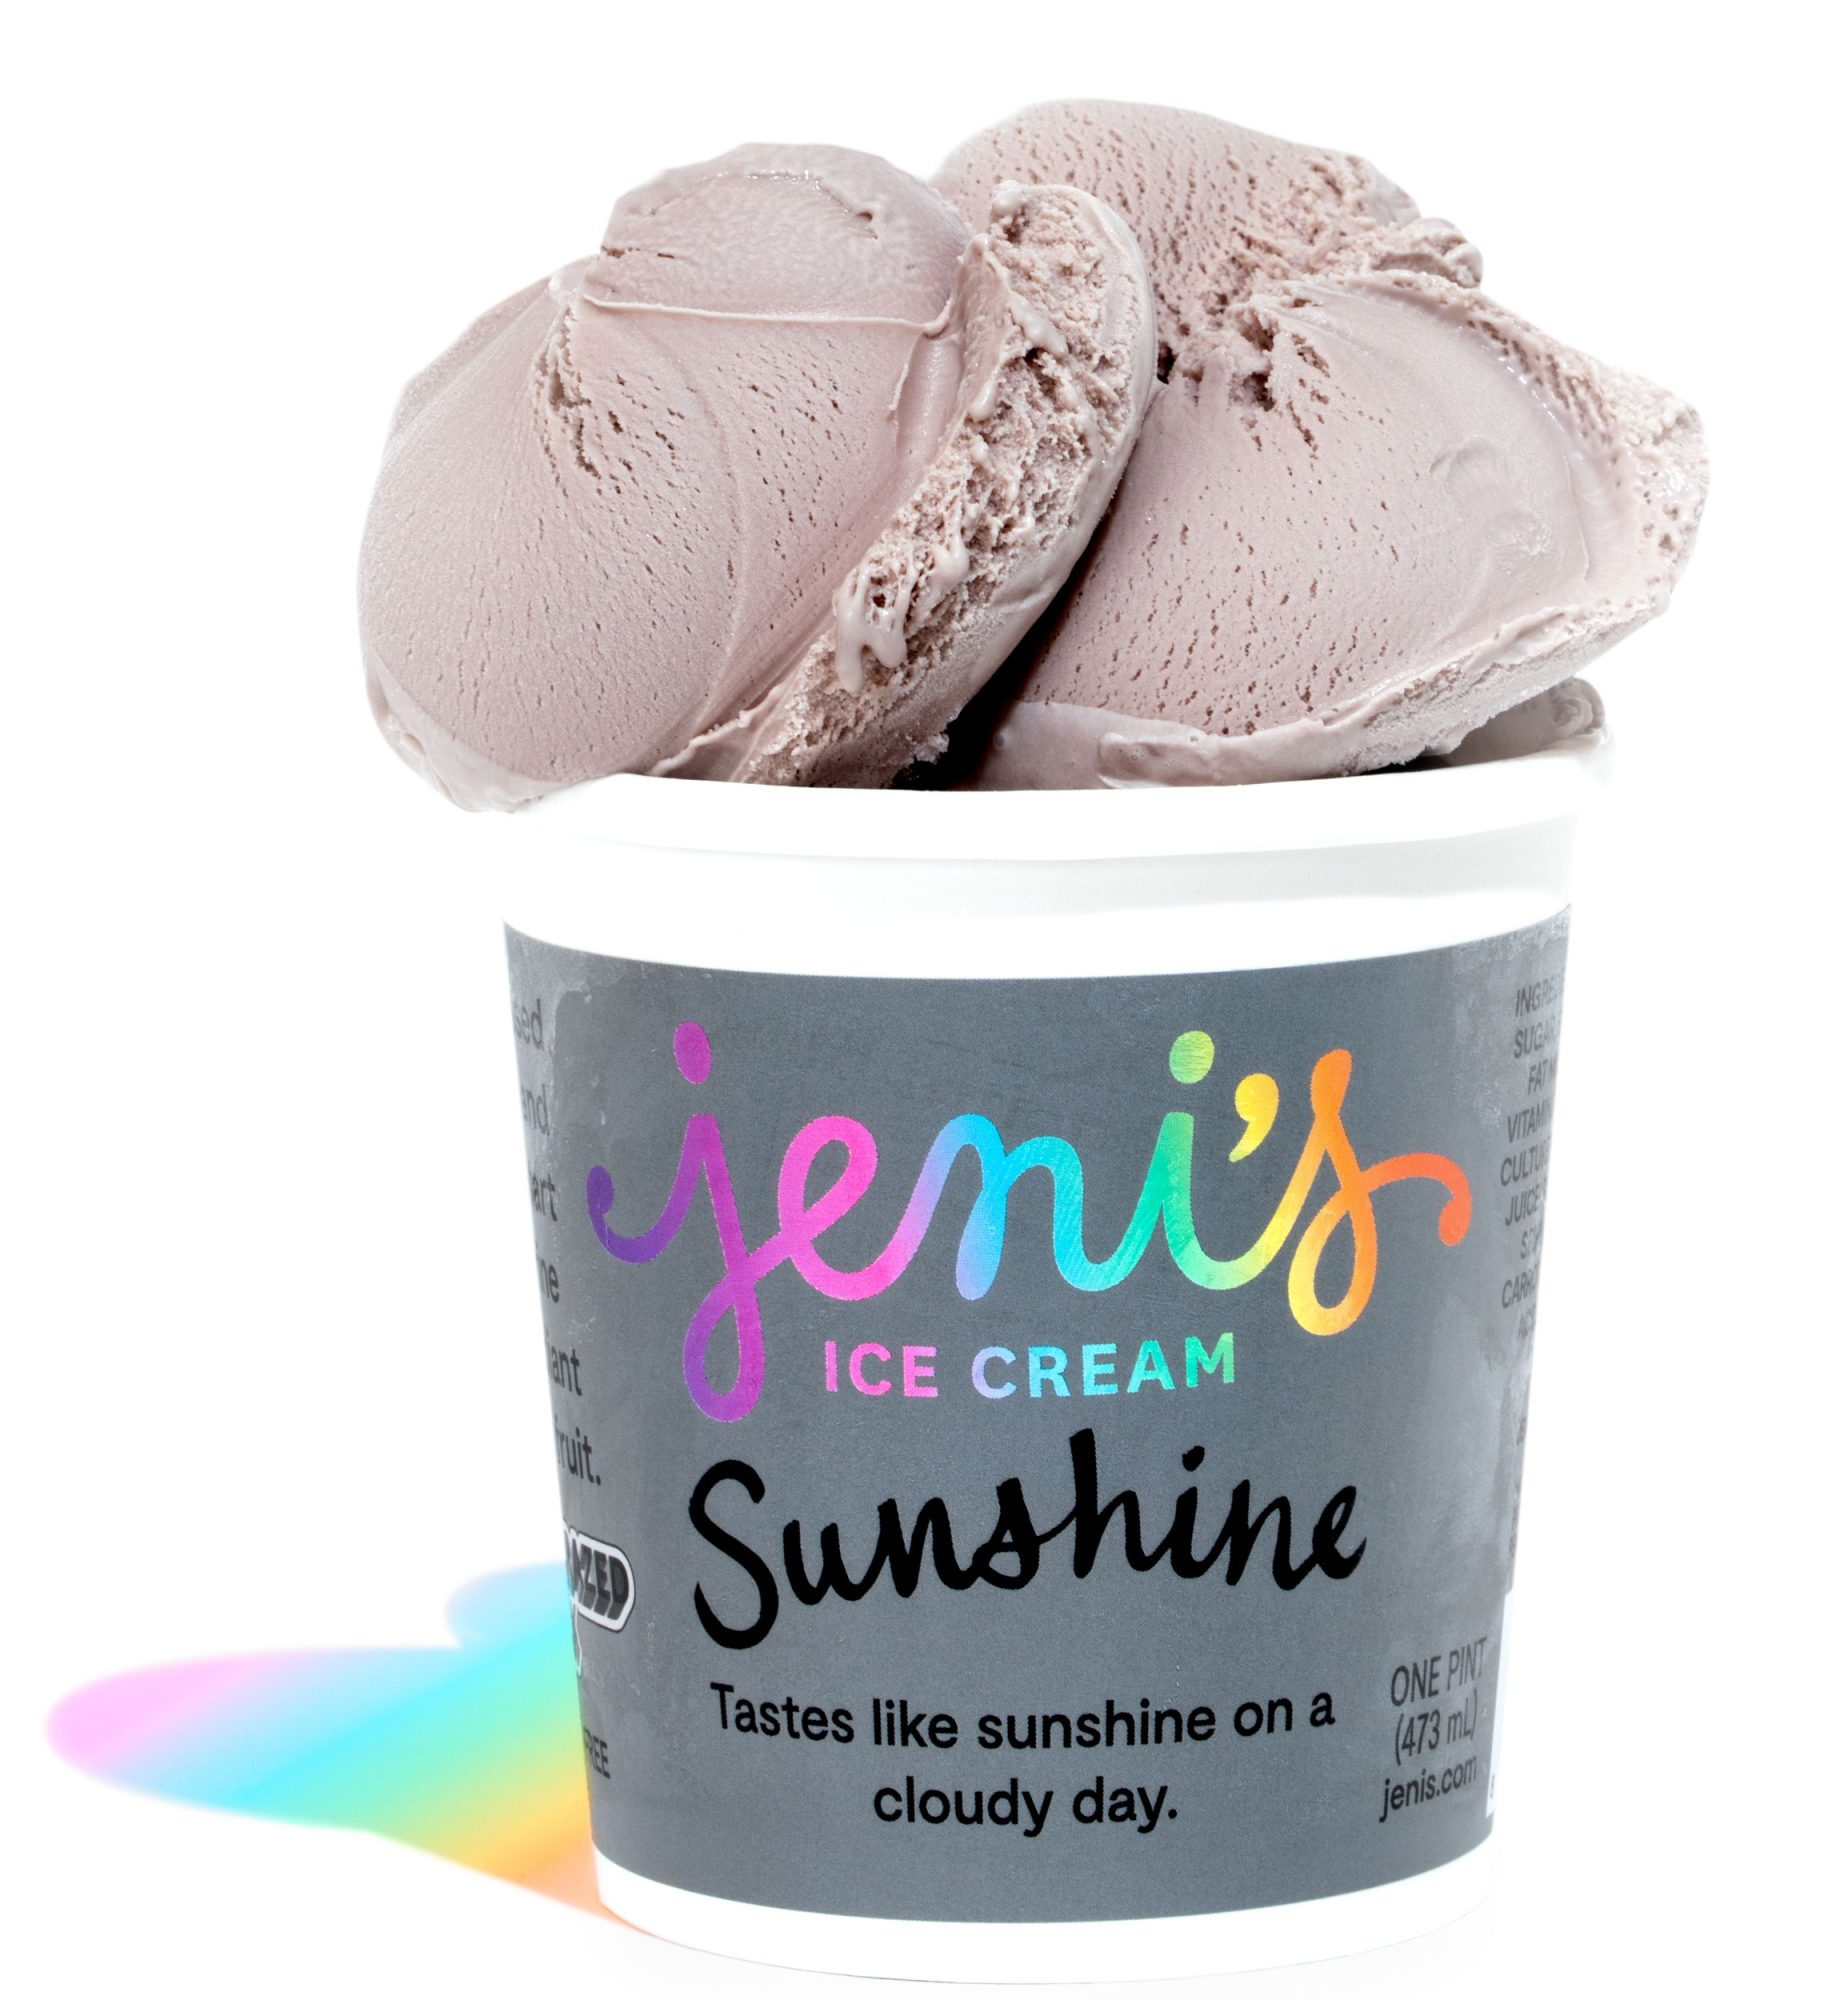 Sunshine ice cream